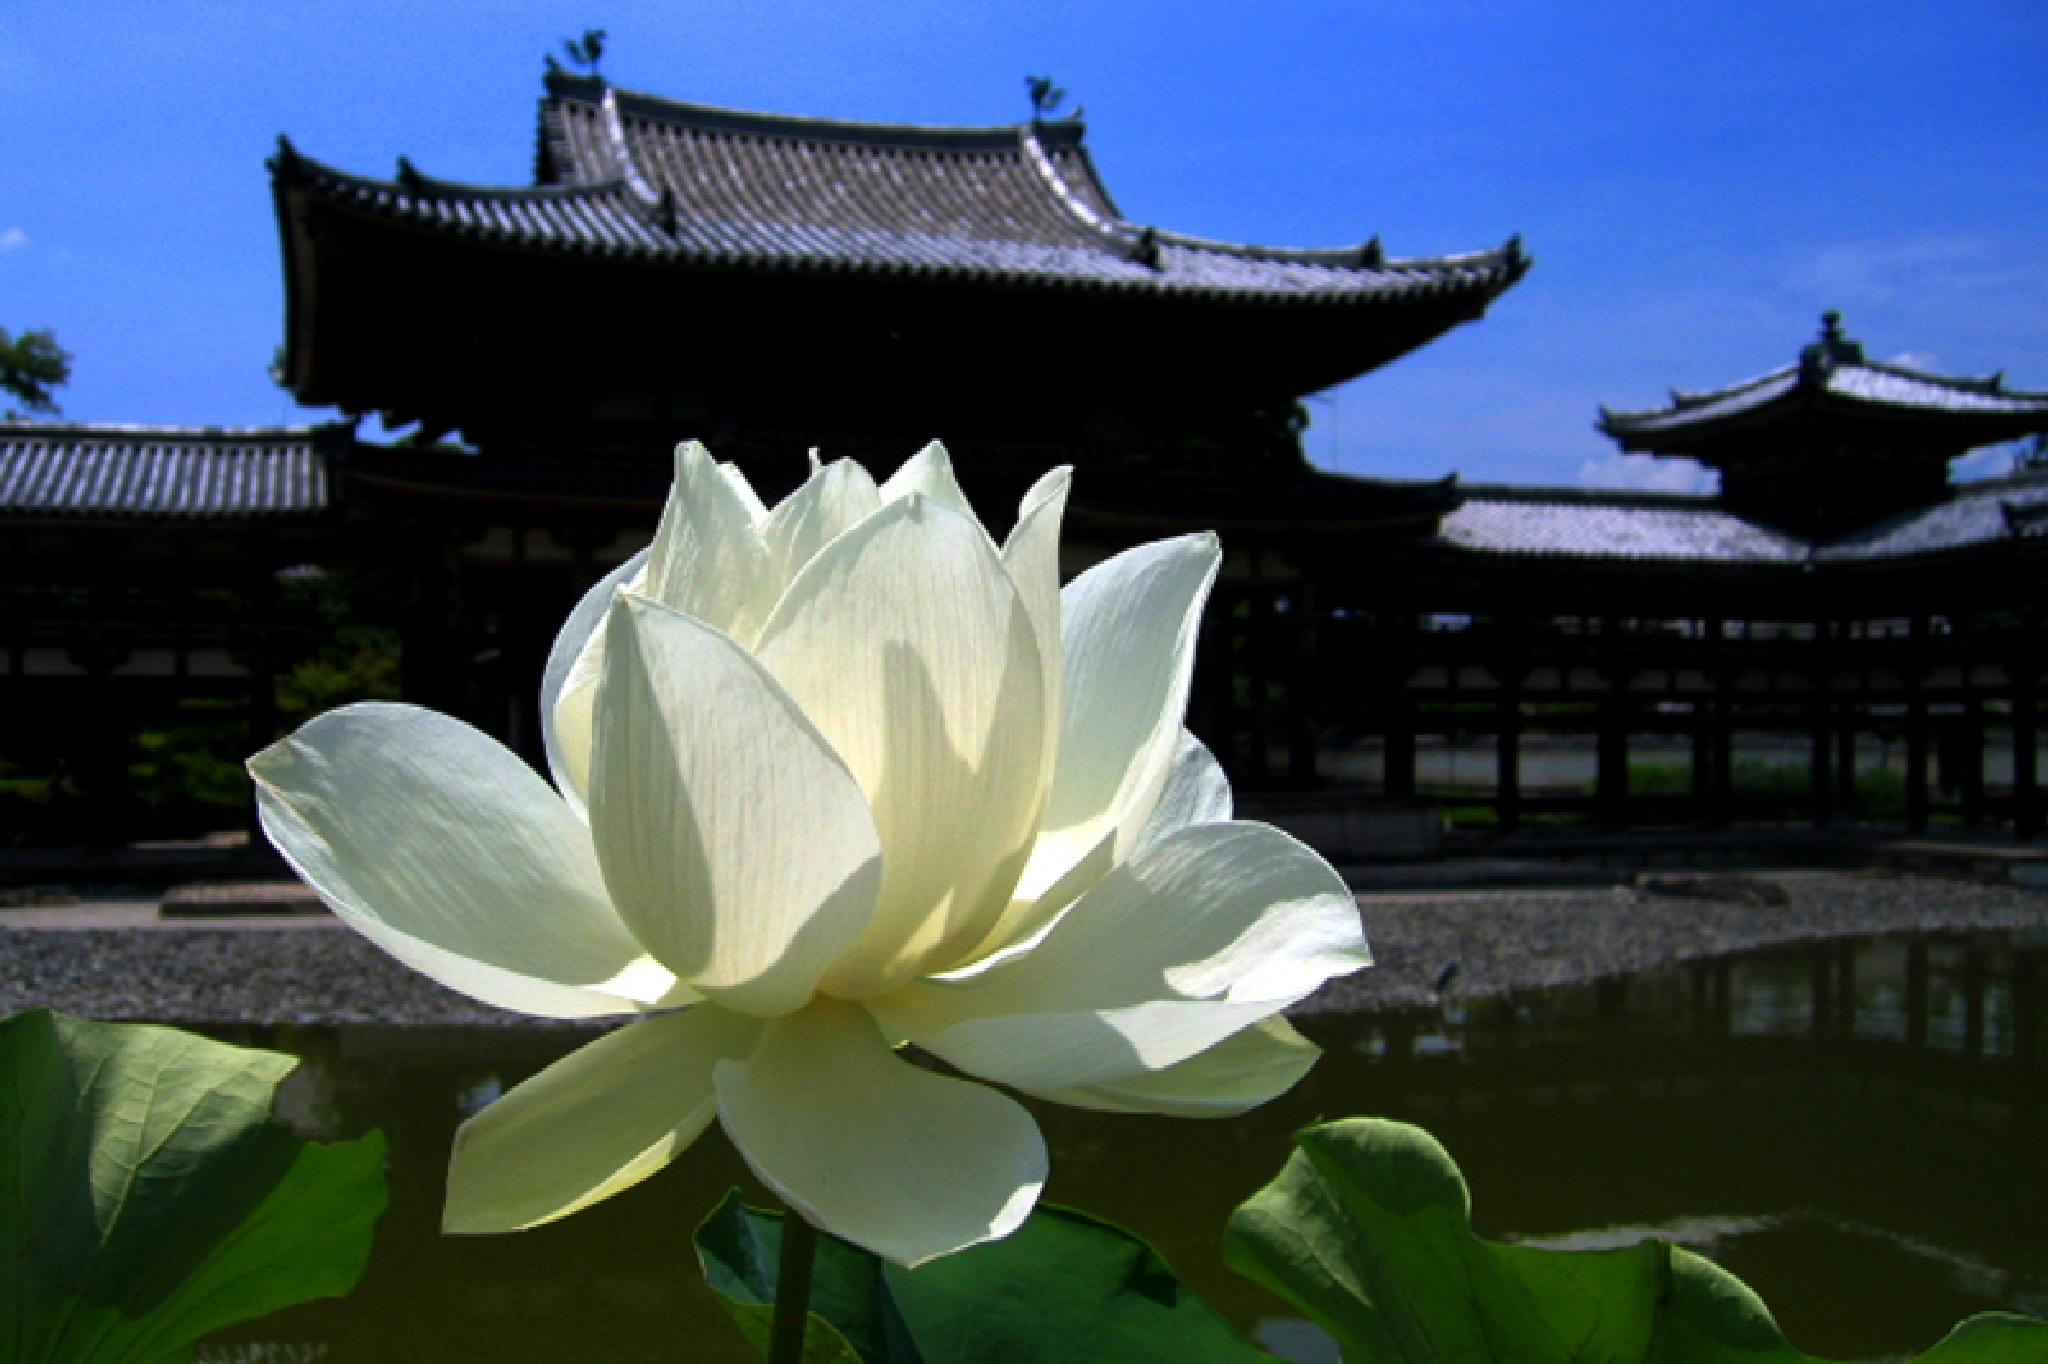 The lotus, Kyoto by photoeene